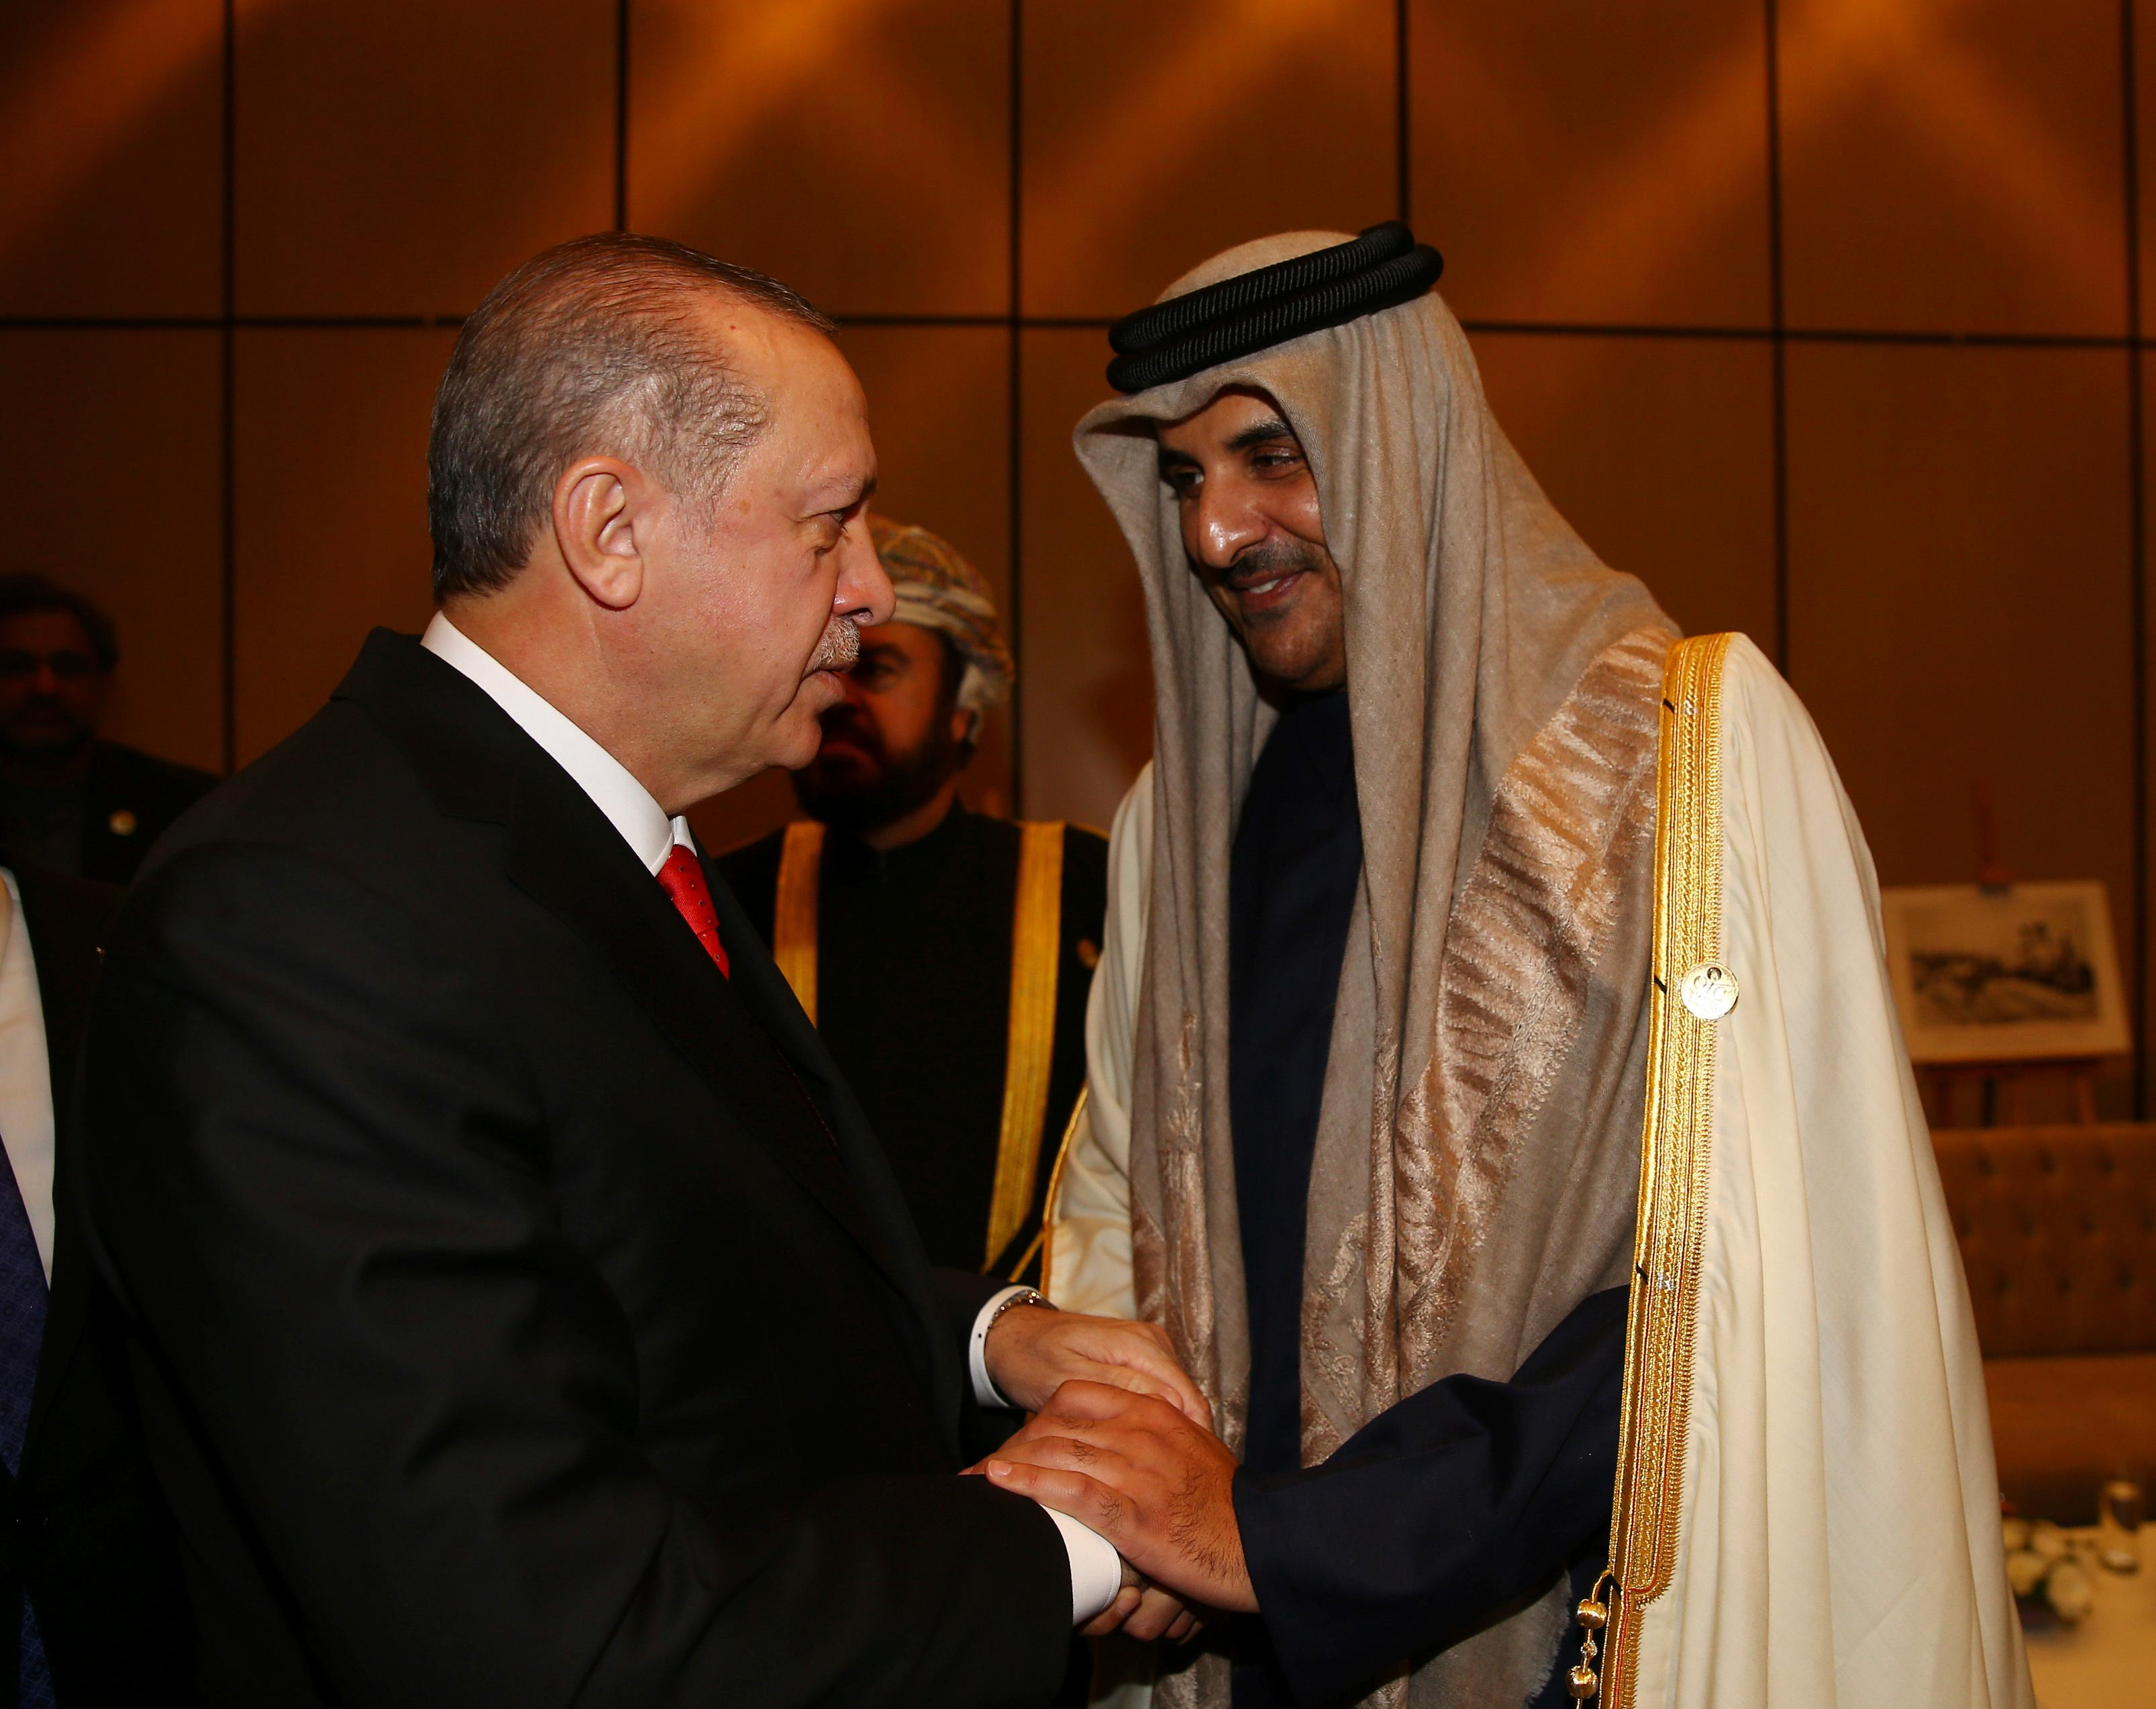 Turkey's President Recep Tayyip Erdogan, left, welcomes Qatar's Emir, Sheikh Tamim Bin Hamad Al Thani, right, prior to the opening session of the Organisation of Islamic Cooperation Extraordinary Summit in Istanbul, Wednesday, Dec. 13, 2017. The Istanbul gathering of heads of state and top officials from the 57-member Organisation of Islamic Cooperation could offer the Muslim world's strongest response yet to U.S. President Donald Trump's recognition of Jerusalem as the capital of Israel.(Kayhan Ozer/Pool Photo via AP)